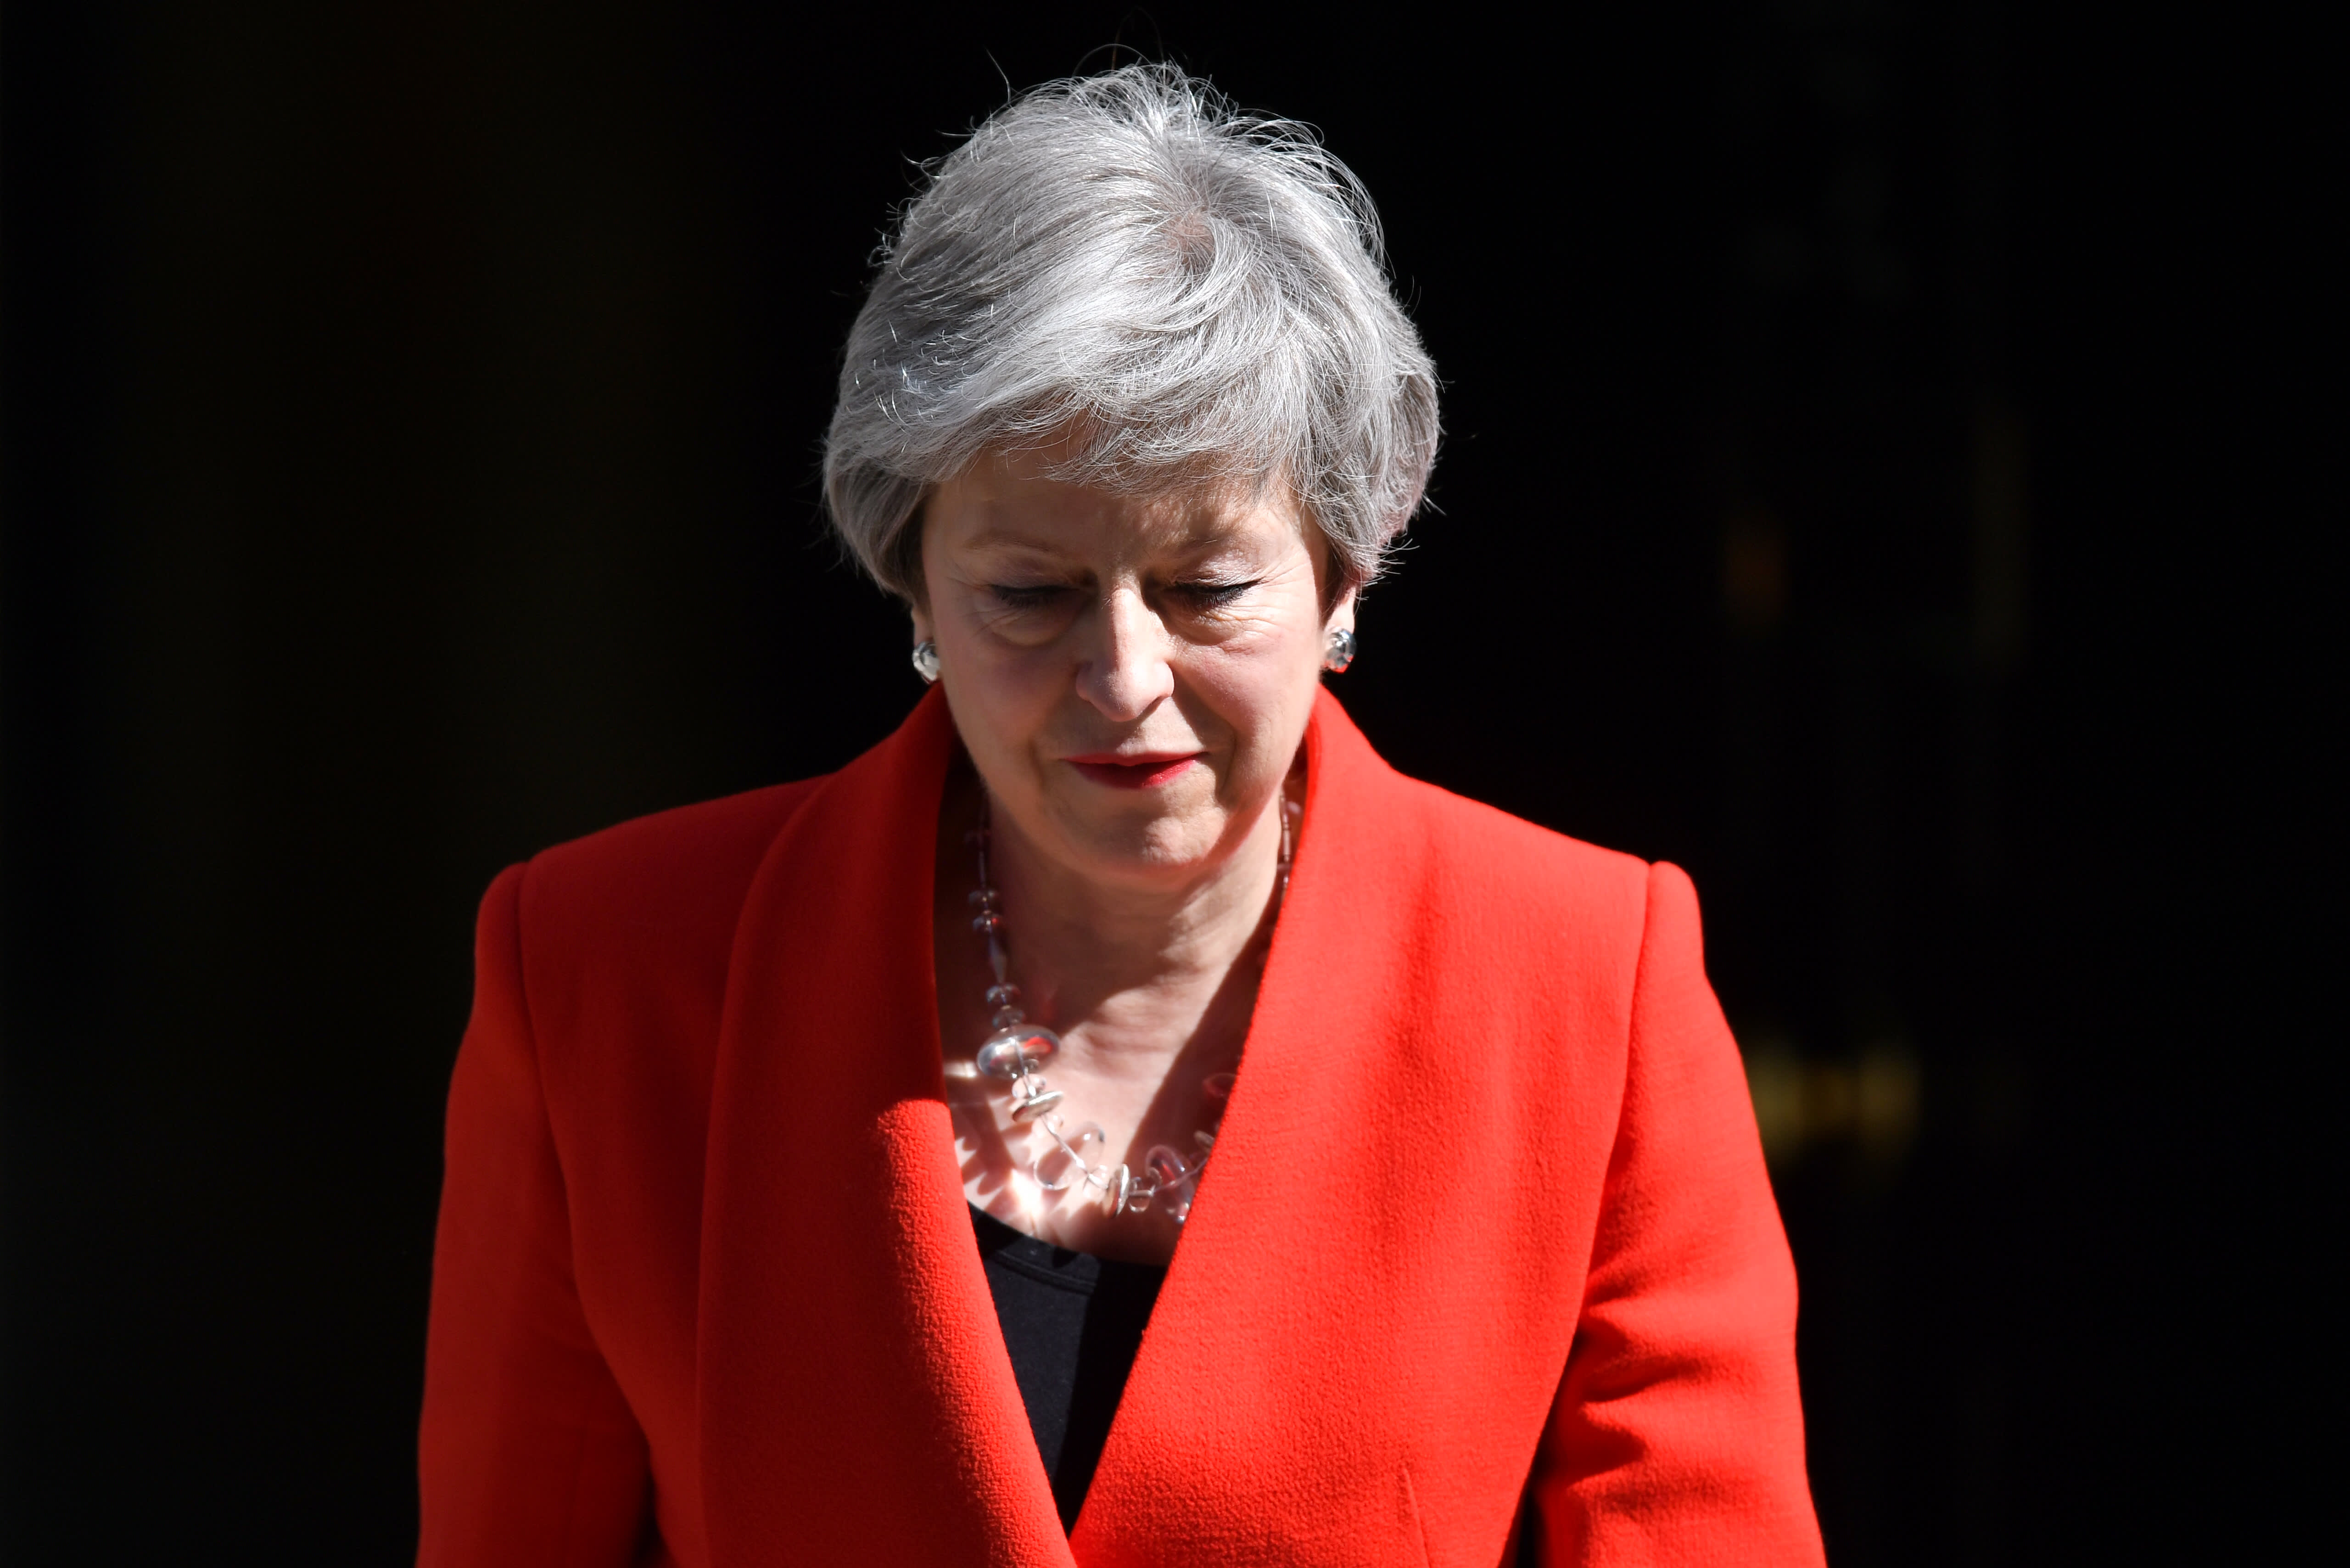 Theresa May resigns as UK prime minister amid Brexit crisis